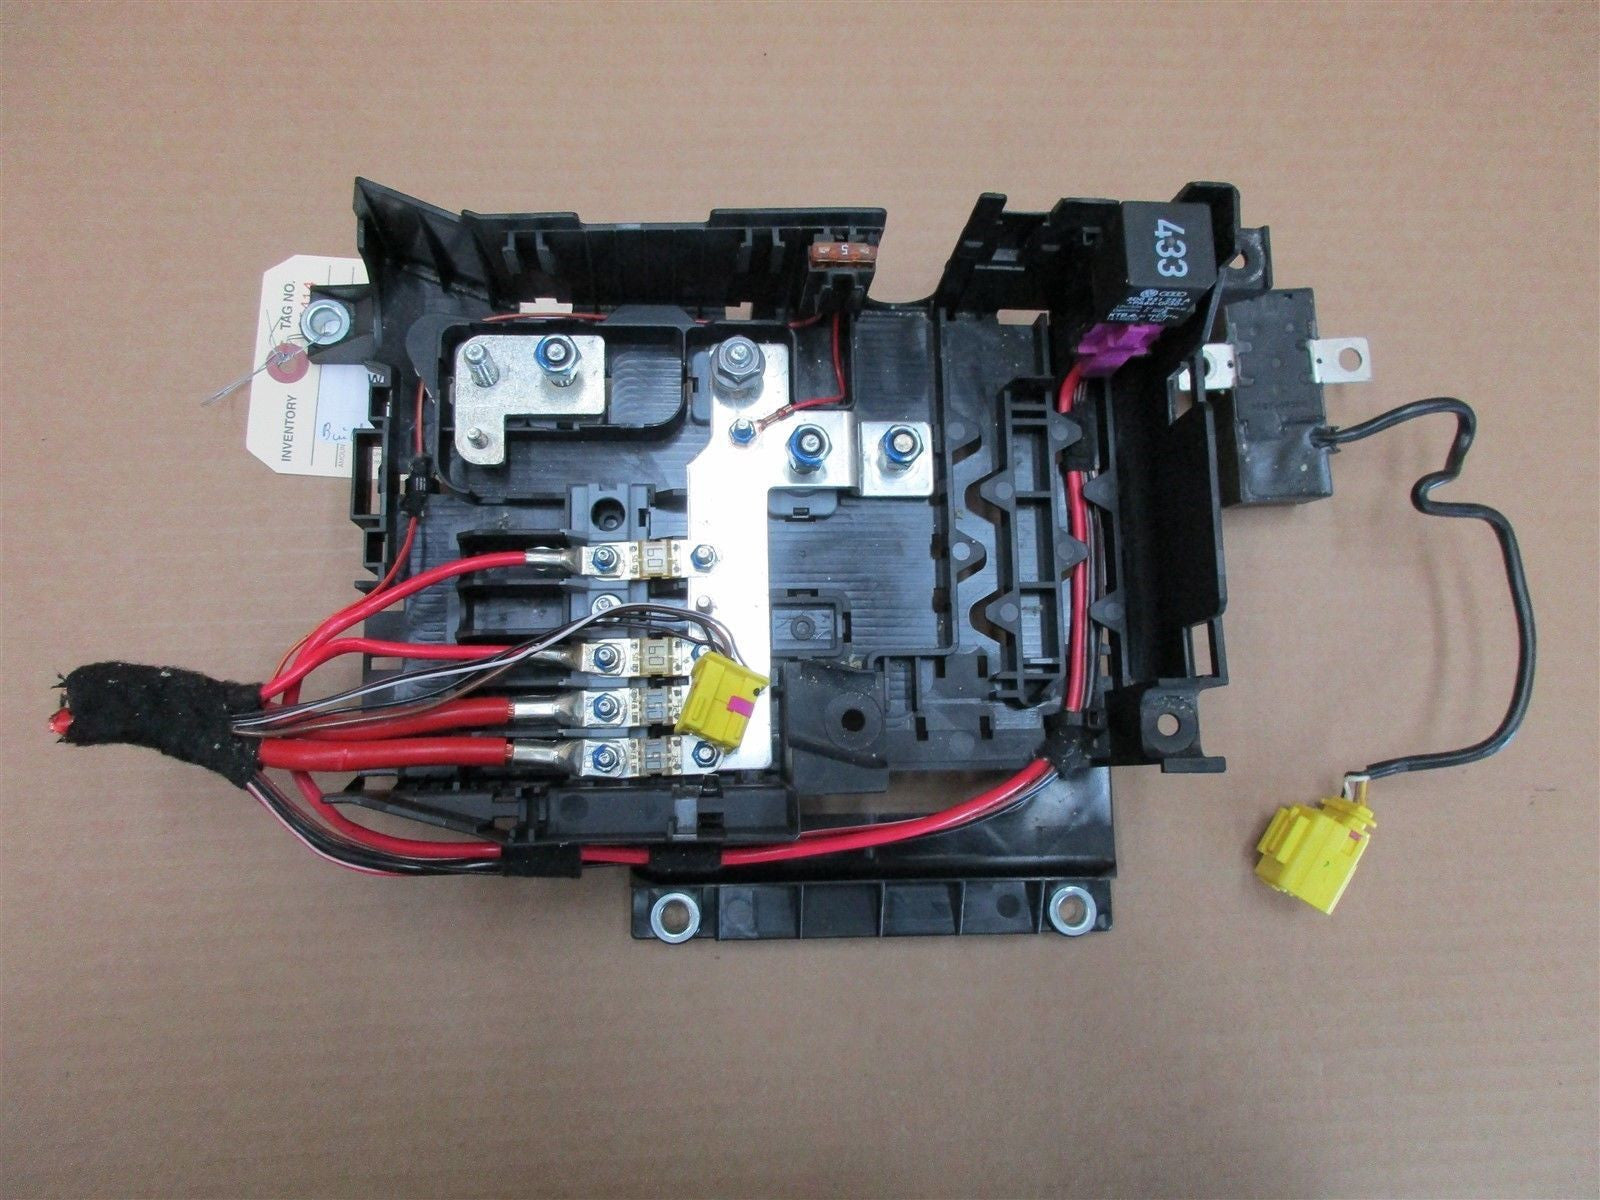 04 cayenne awd porsche 955 fuse box relay 7l0937548. Black Bedroom Furniture Sets. Home Design Ideas